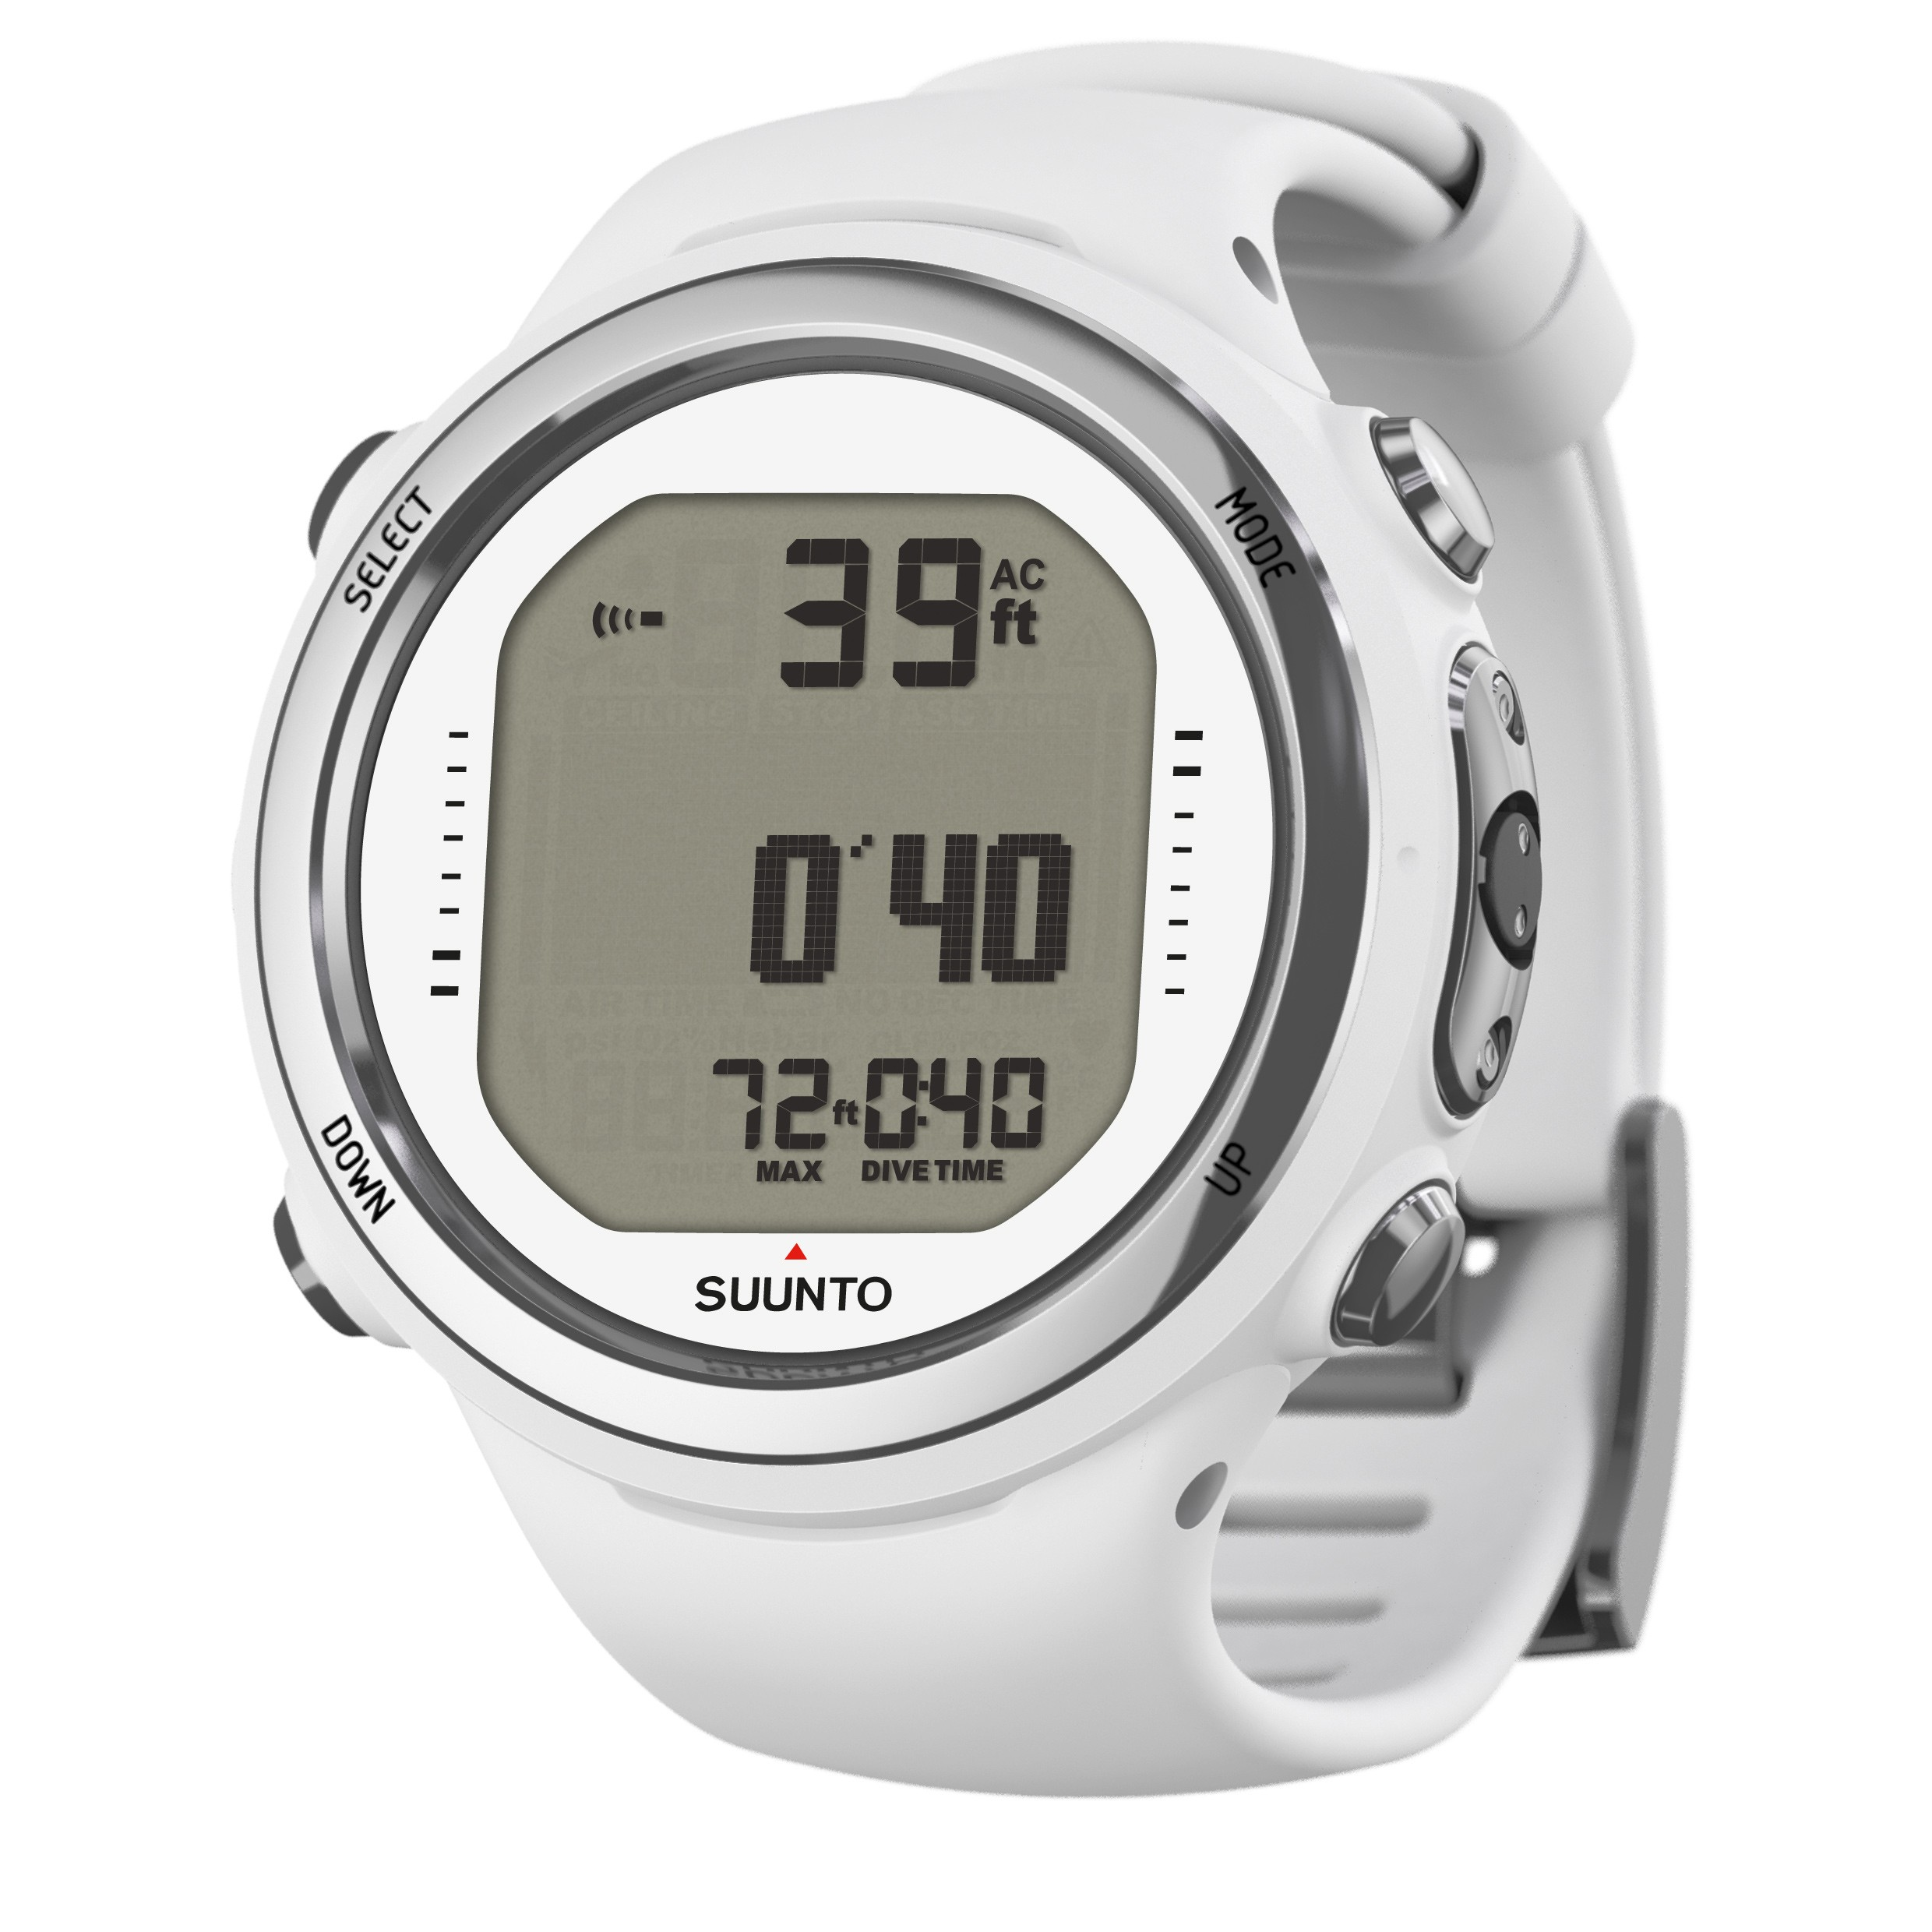 Suunto D4i Novo Dive Computer with FREE Compass - Limited Time Offer!